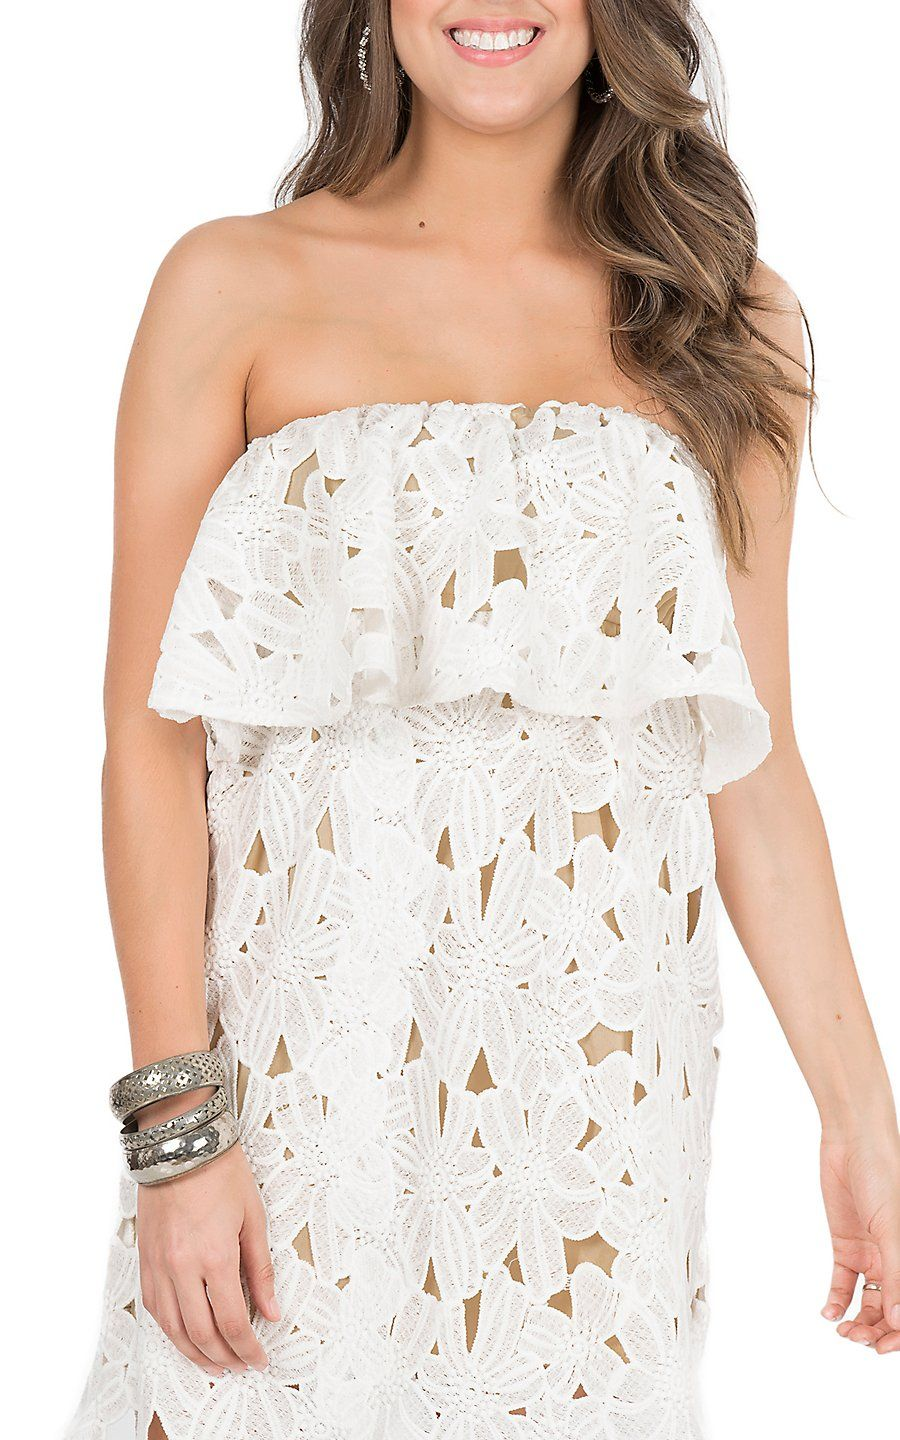 Judith March Women S Beige With White Lace Strapless Dress Strapless White Lace Dress Cowgirl Dresses Country Western Dresses [ 1440 x 900 Pixel ]